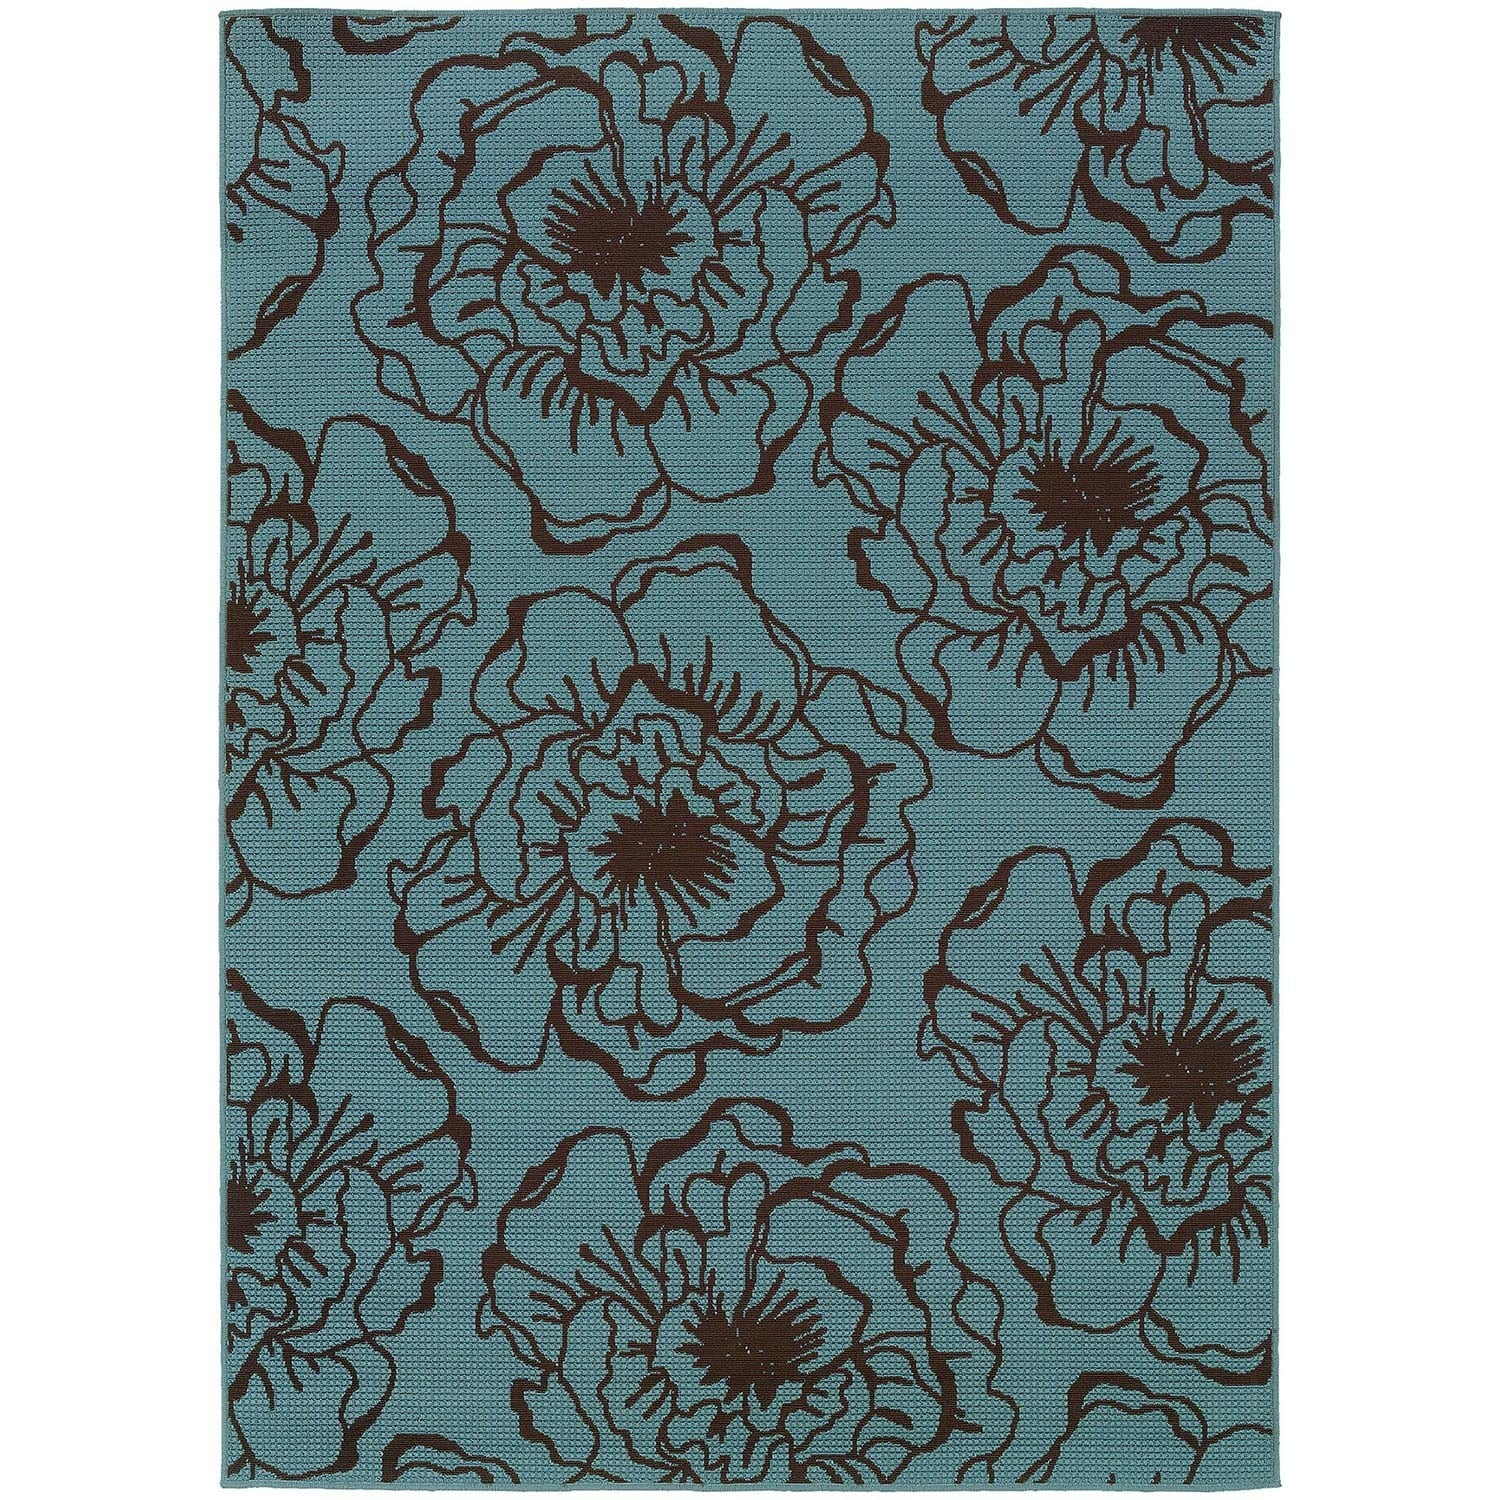 StyleHaven Floral Blue/Brown Indoor-Outdoor Area Rug (53x76) - 53 x 76 (53 x 76 - Blue/Brown)